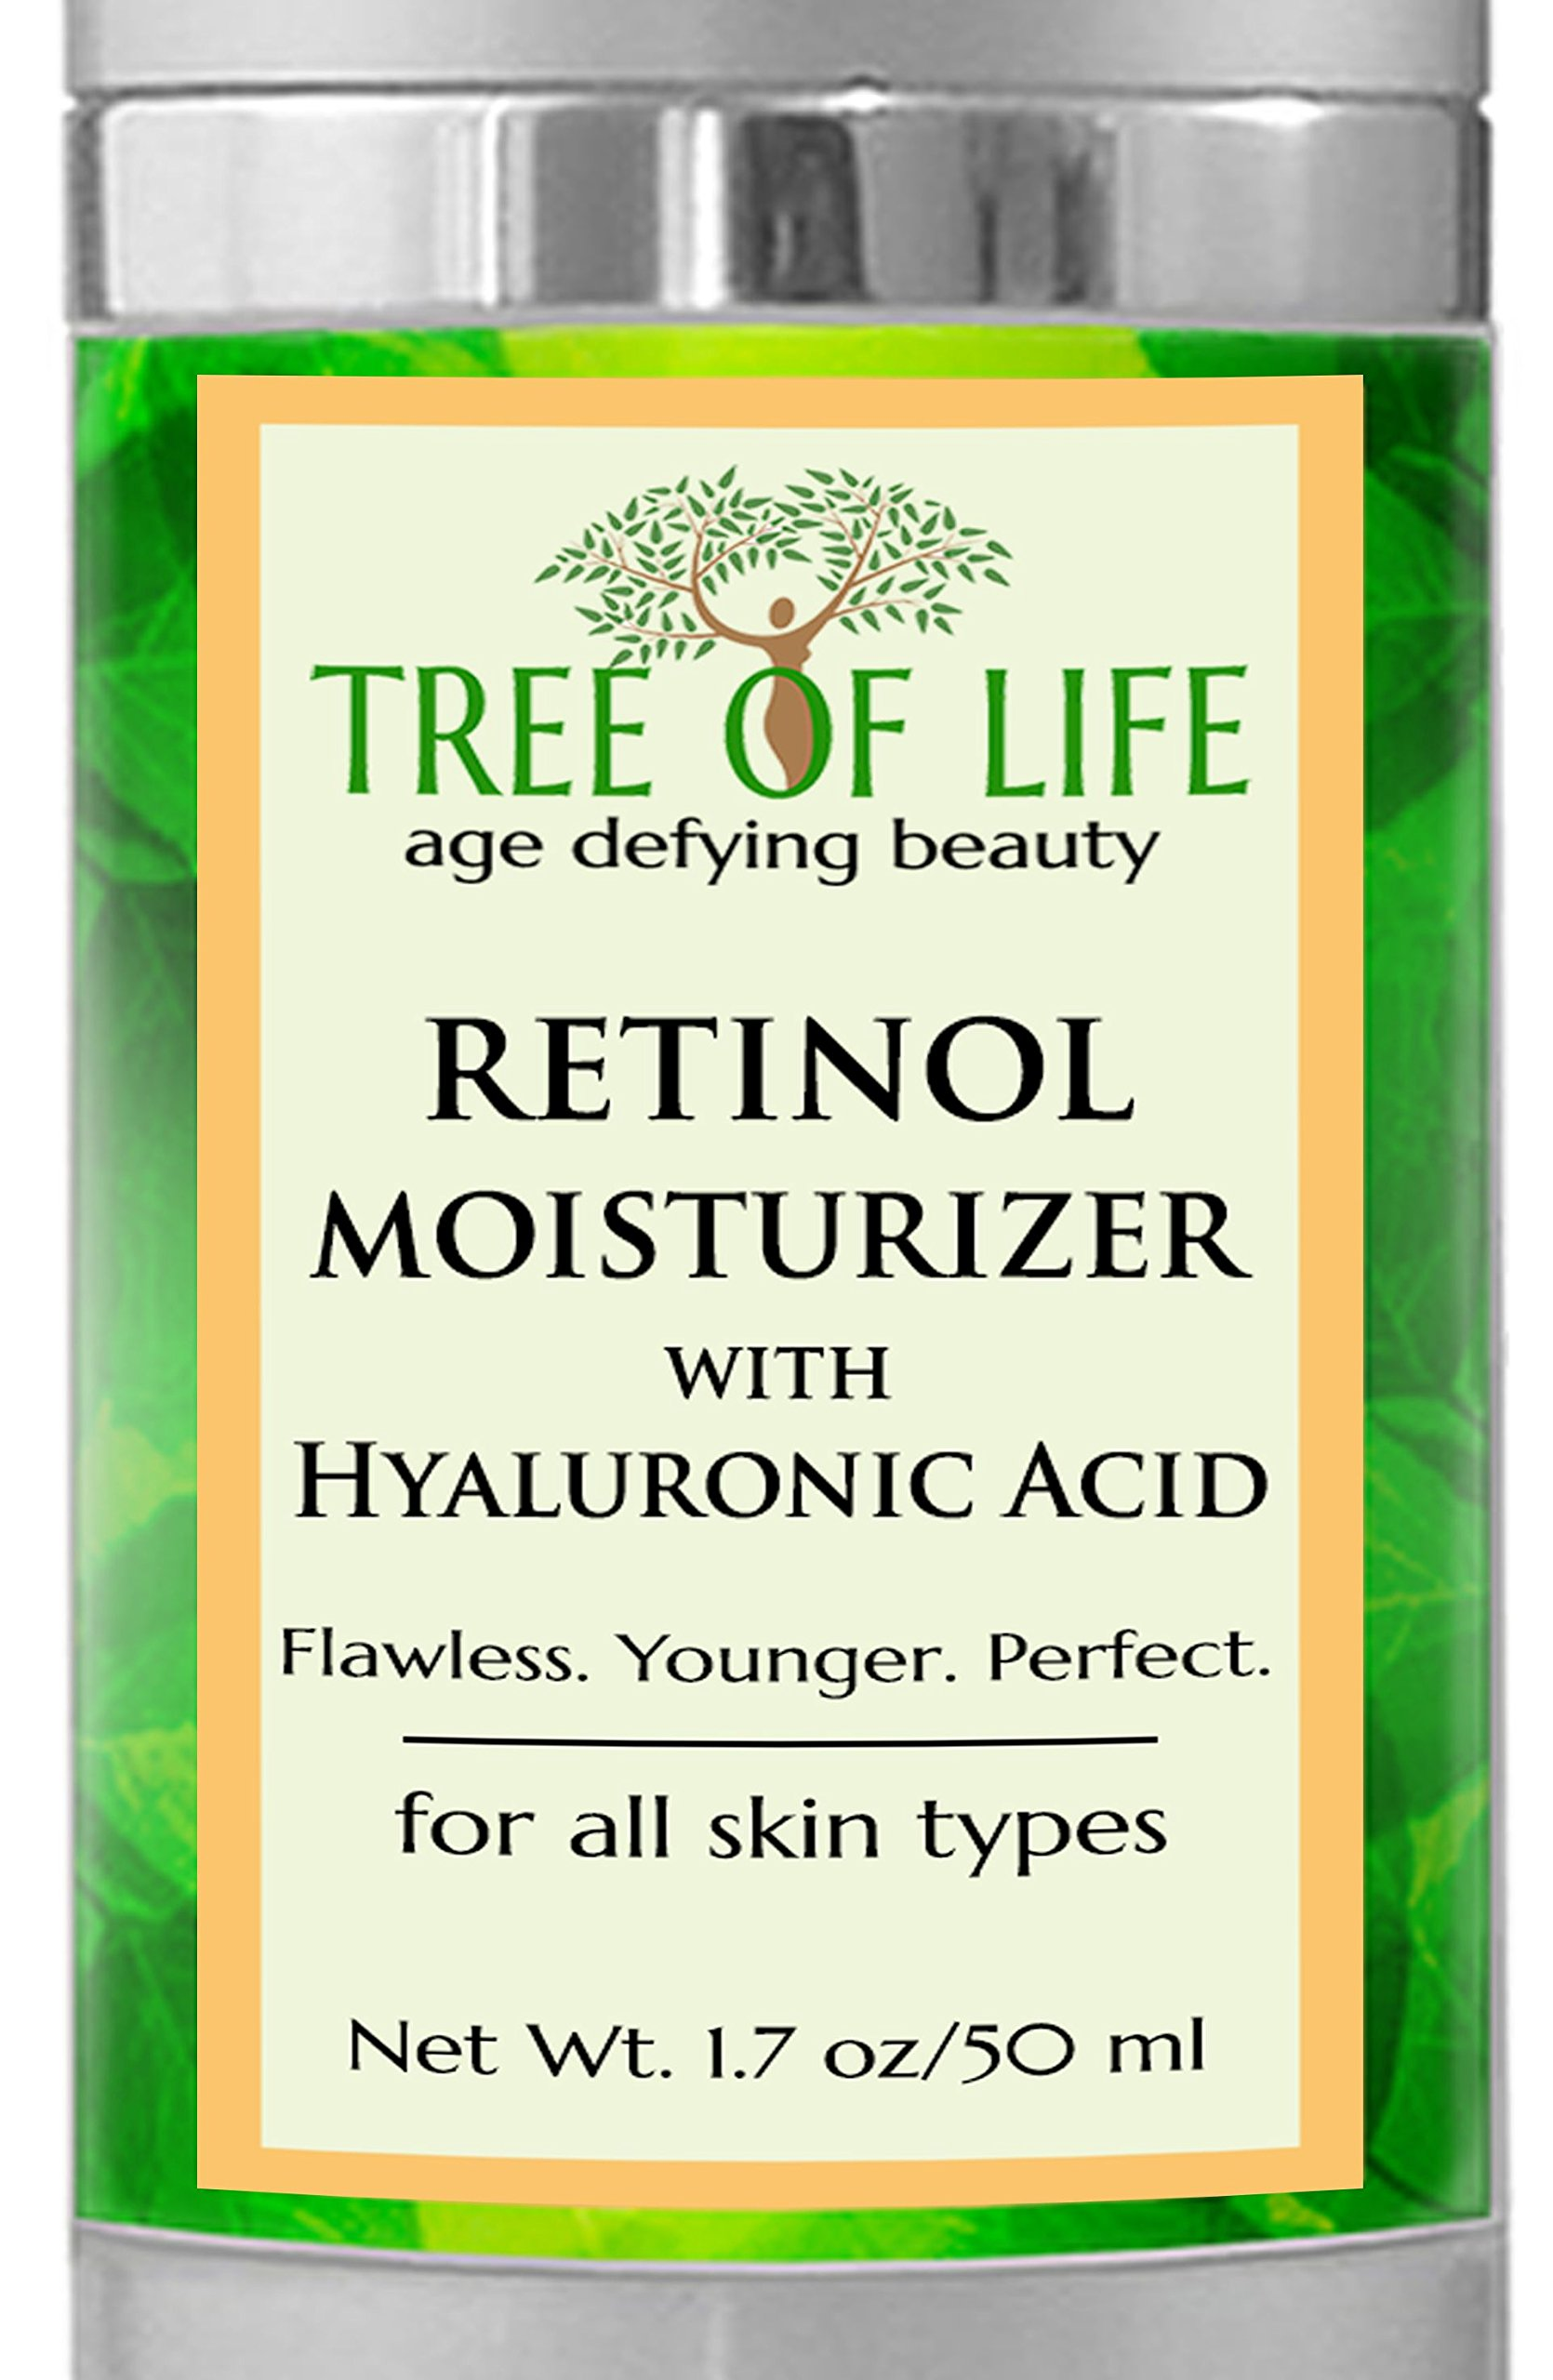 Retinol Moisturizer Face Cream - Clinical Strength by Flawless. Younger. Perfect.